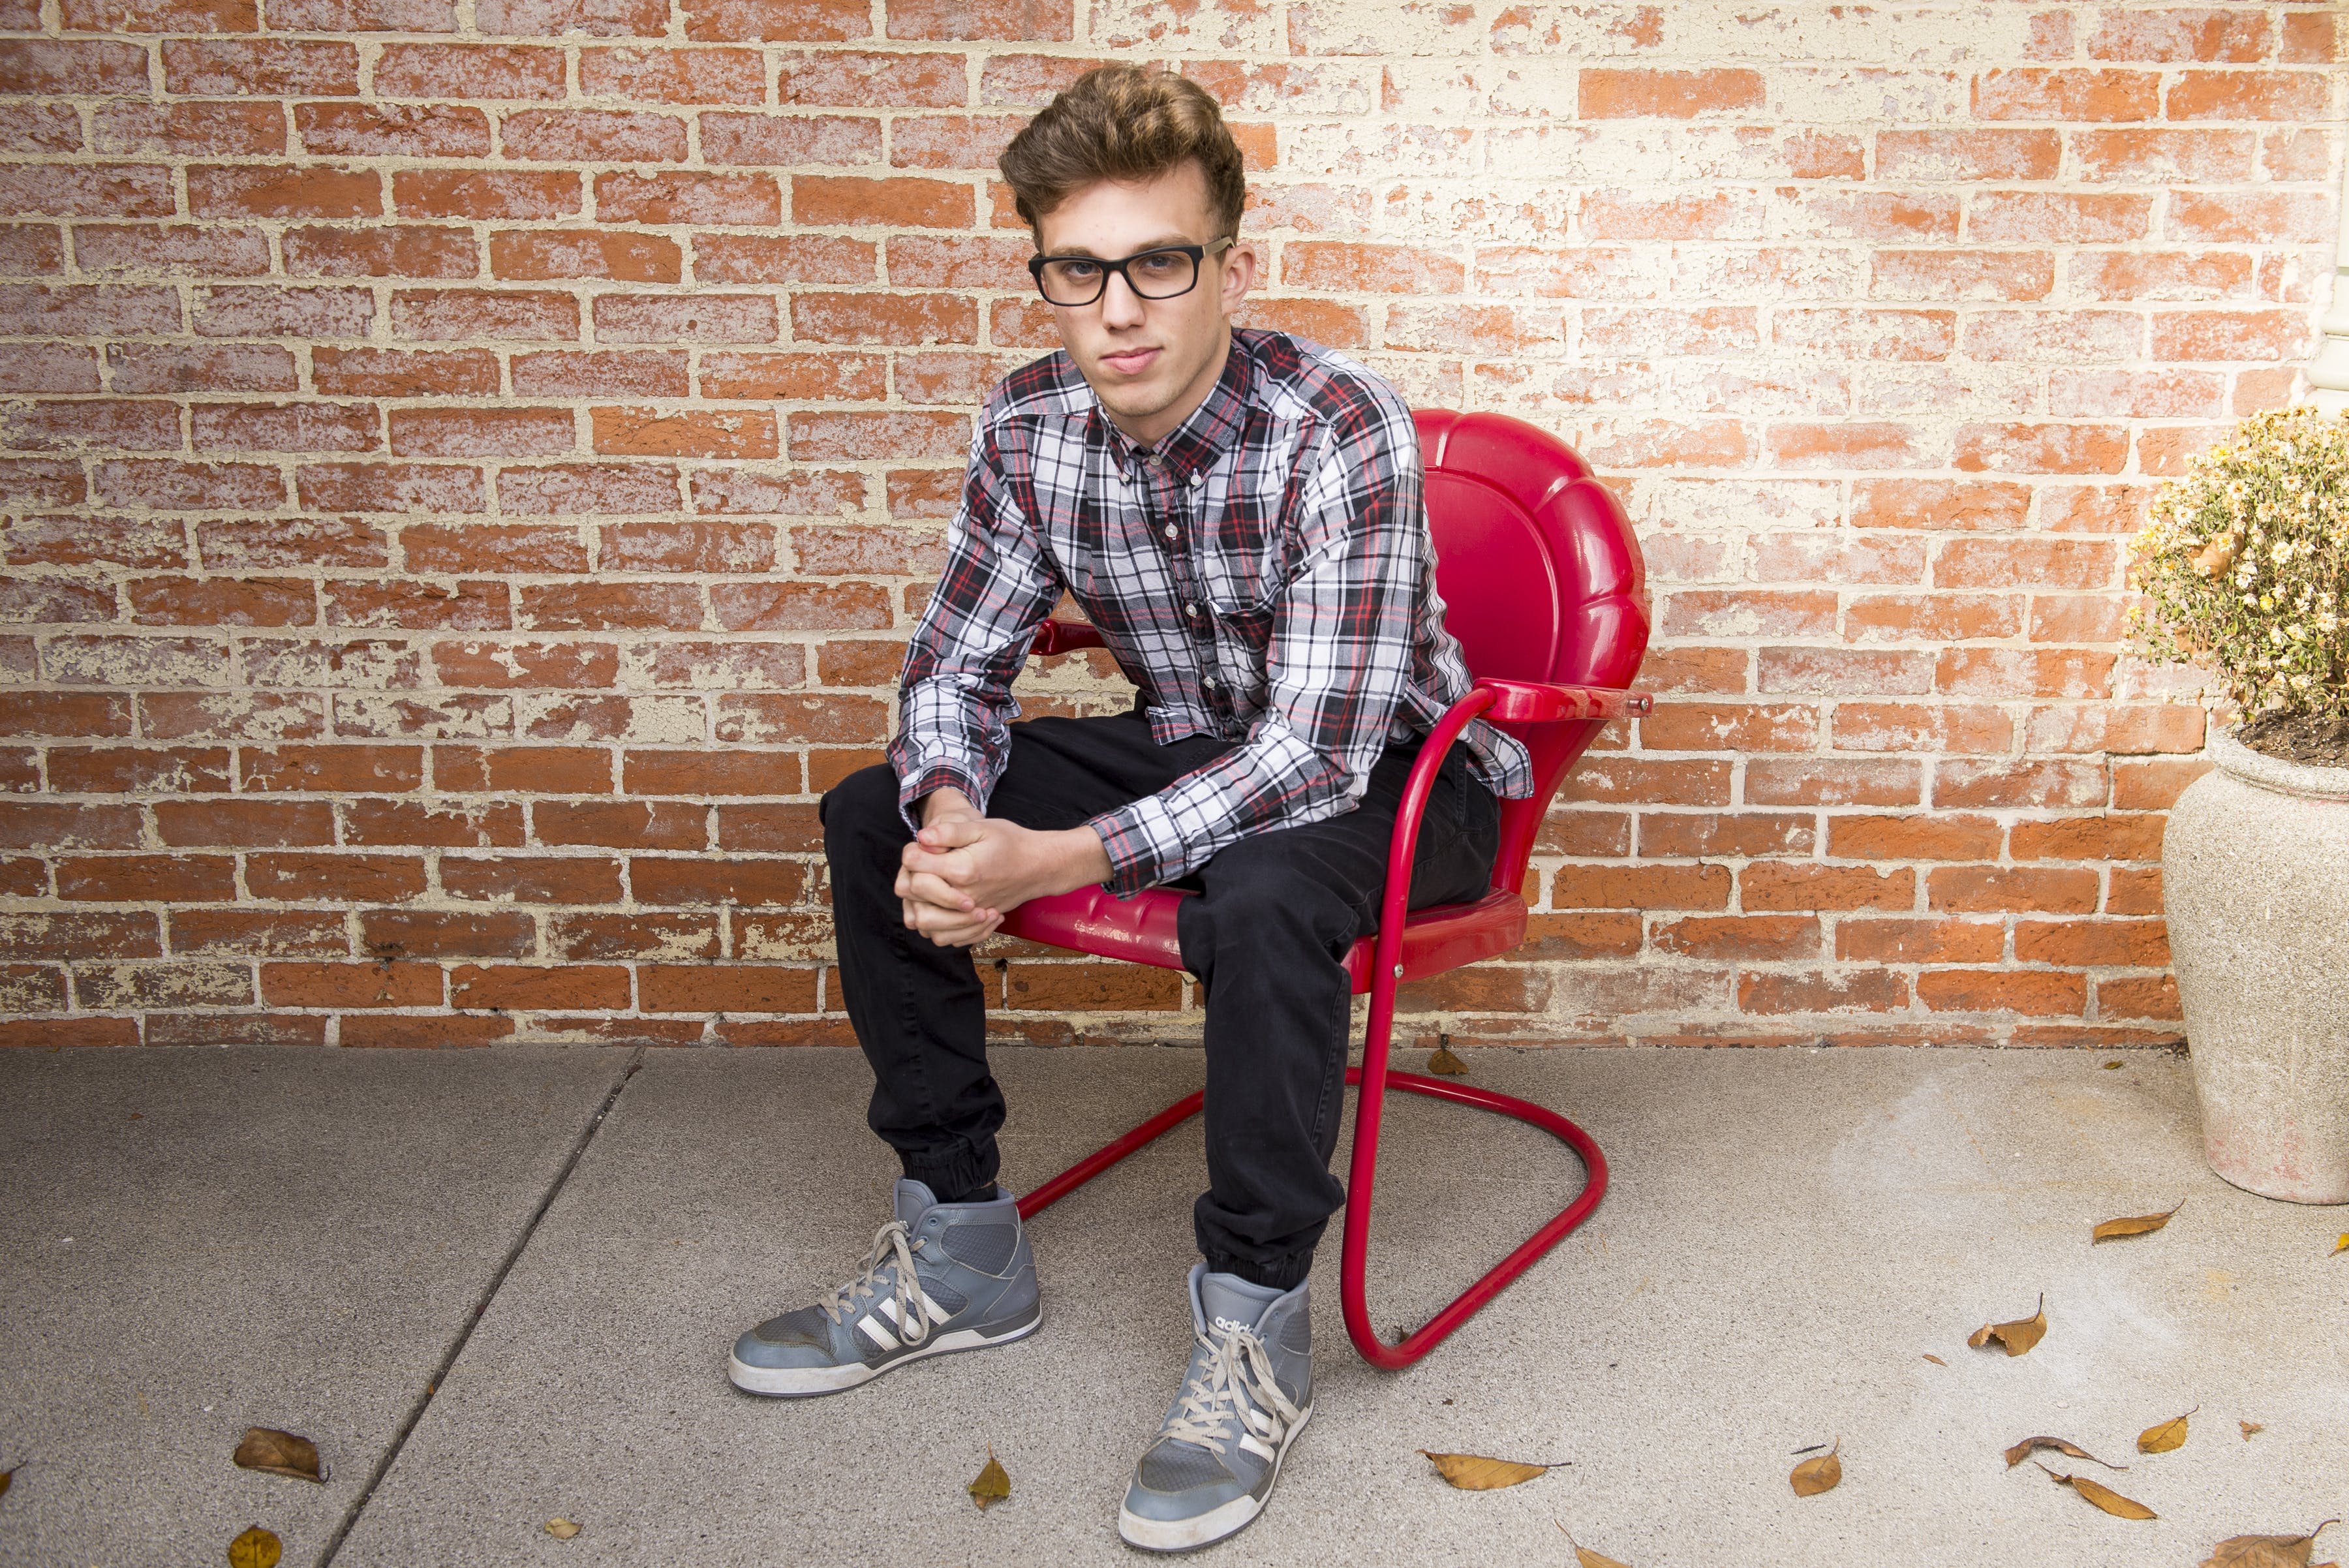 Man In Plaid Long-Sleeved Shirt And Black Pants Sitting On Red Chair